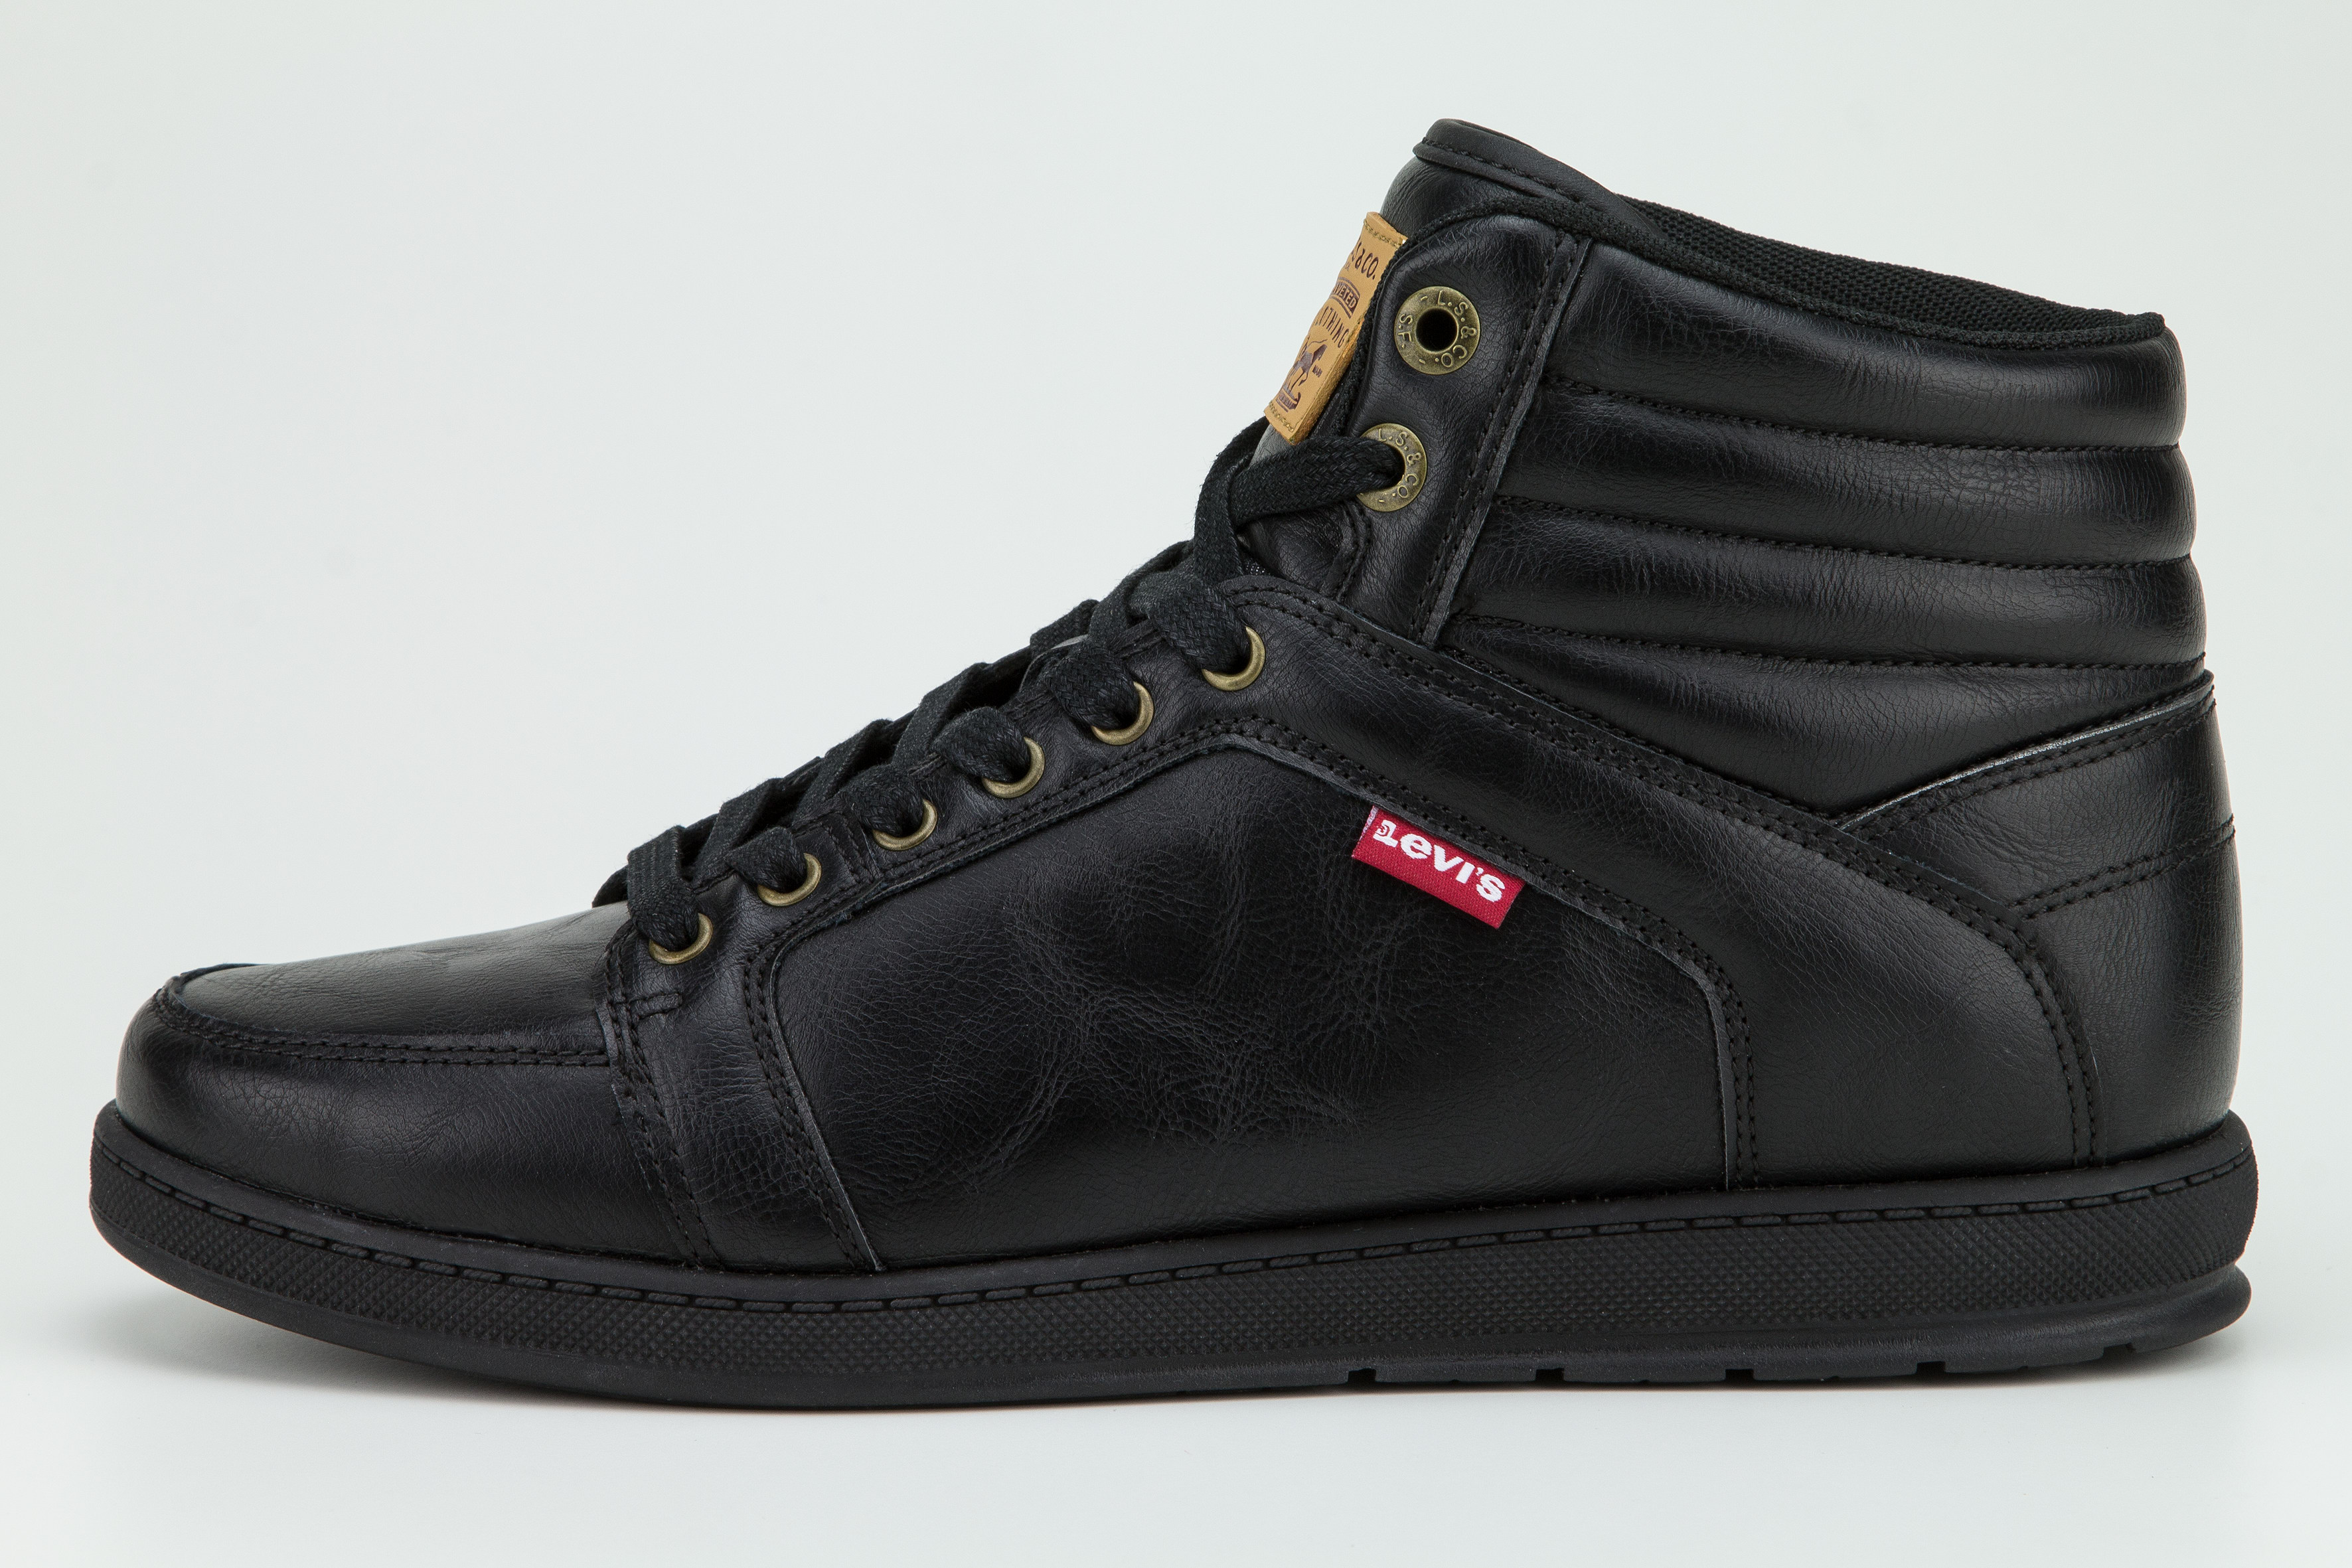 low priced 1a89f 4cce1 Levis Schuhe Boots VANCE MARSHALL PERF 228005 1794 60 schwarz SH18-LB1